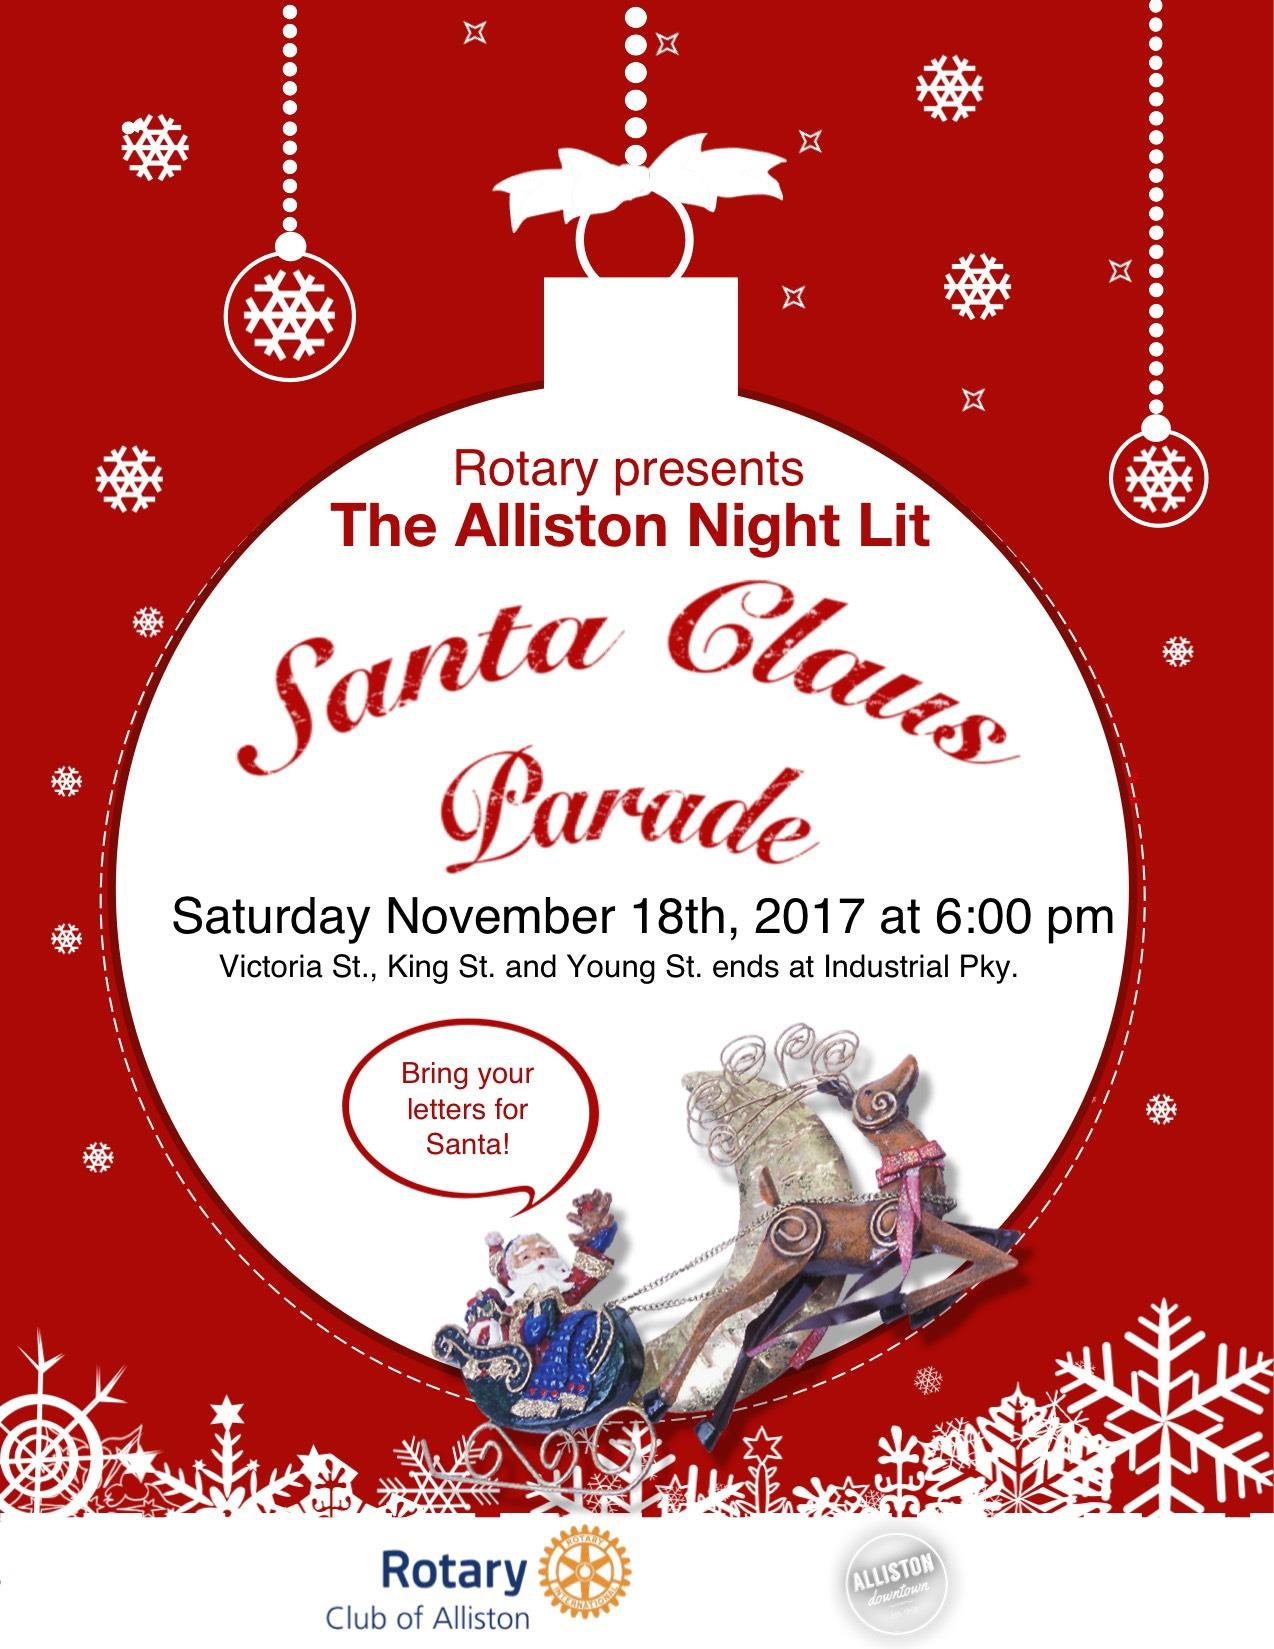 Stories rotary club of alliston join us for the 11th annual night lit parade in alliston spiritdancerdesigns Image collections